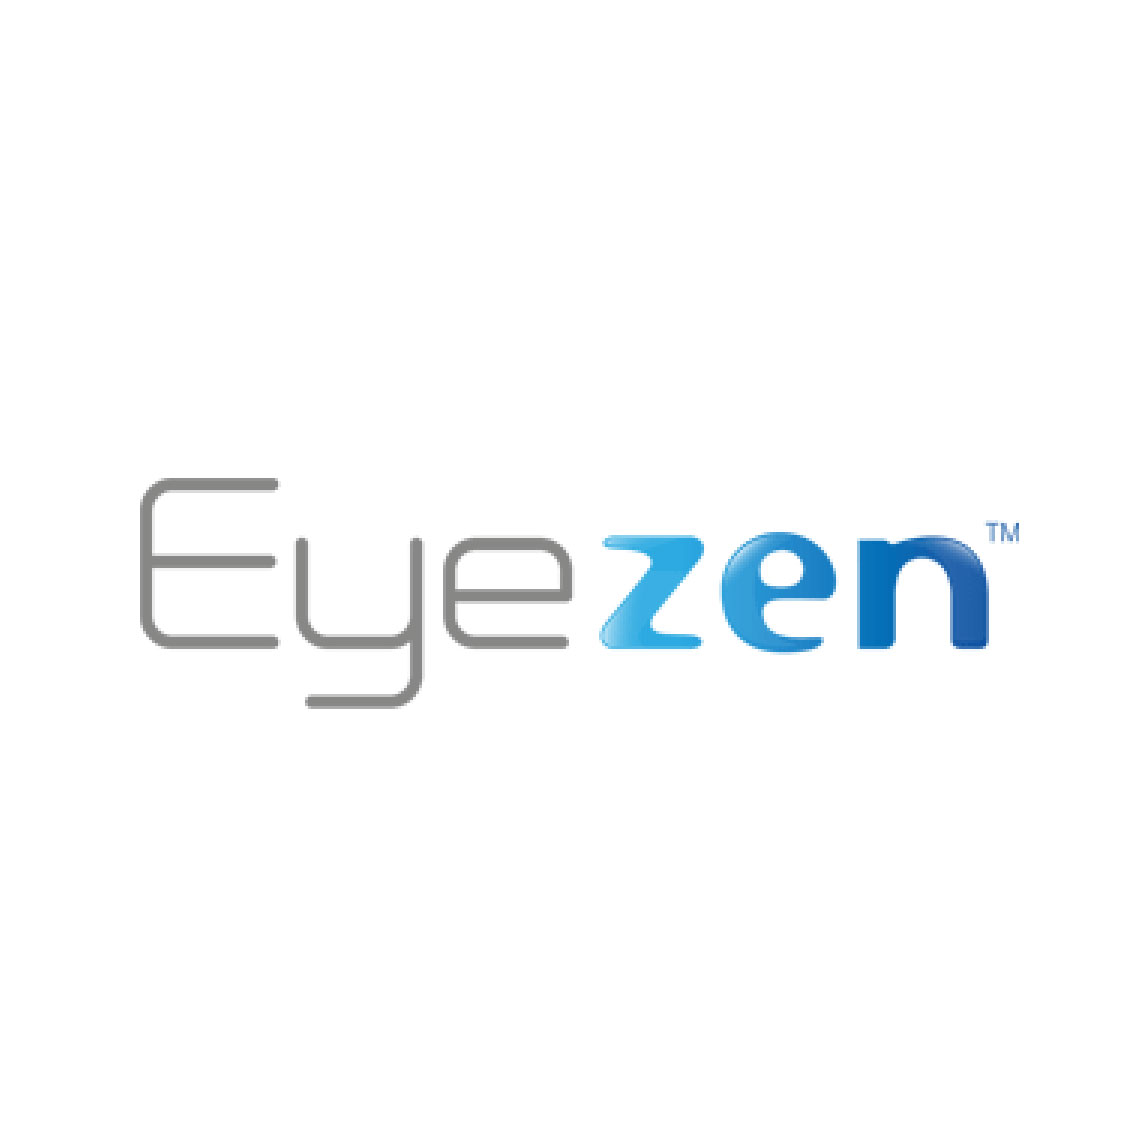 Eyezen™ - Reduces eye strain and fatigue with an enhanced single vision lens that filters blue light.